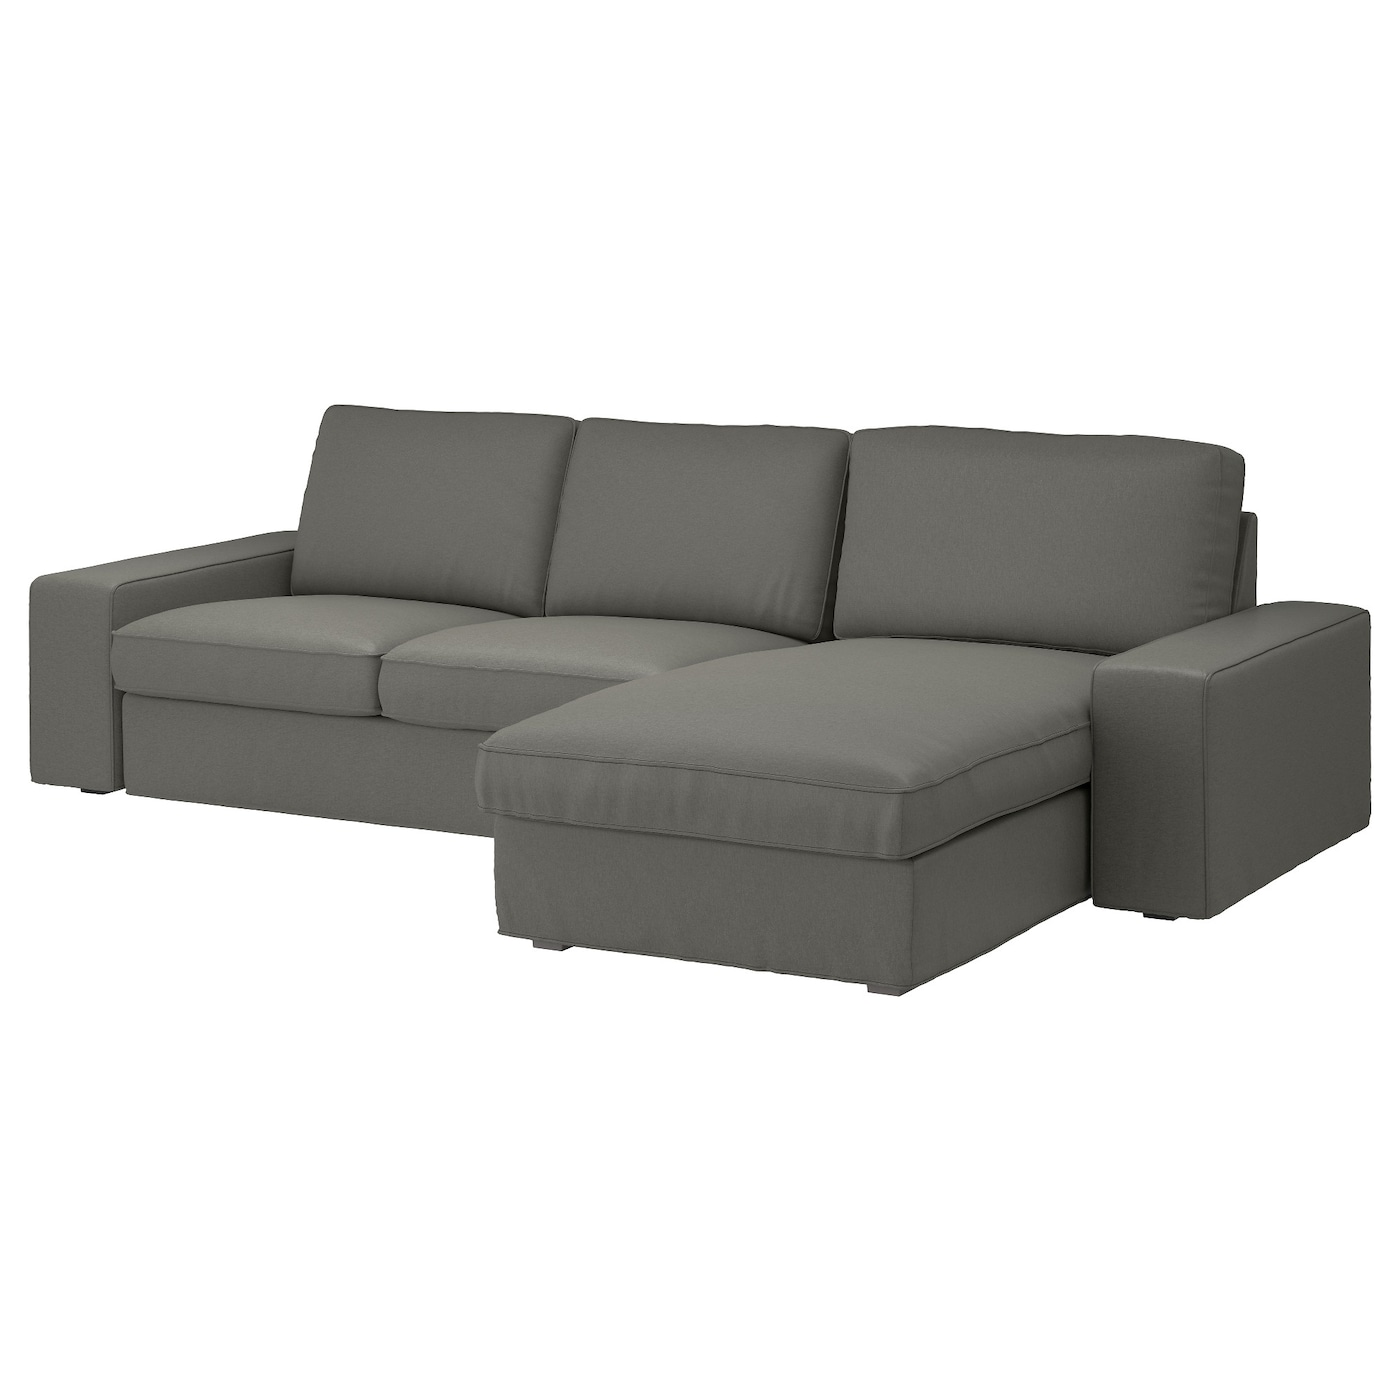 kivik 3 seat sofa with chaise longue borred grey green ikea. Black Bedroom Furniture Sets. Home Design Ideas